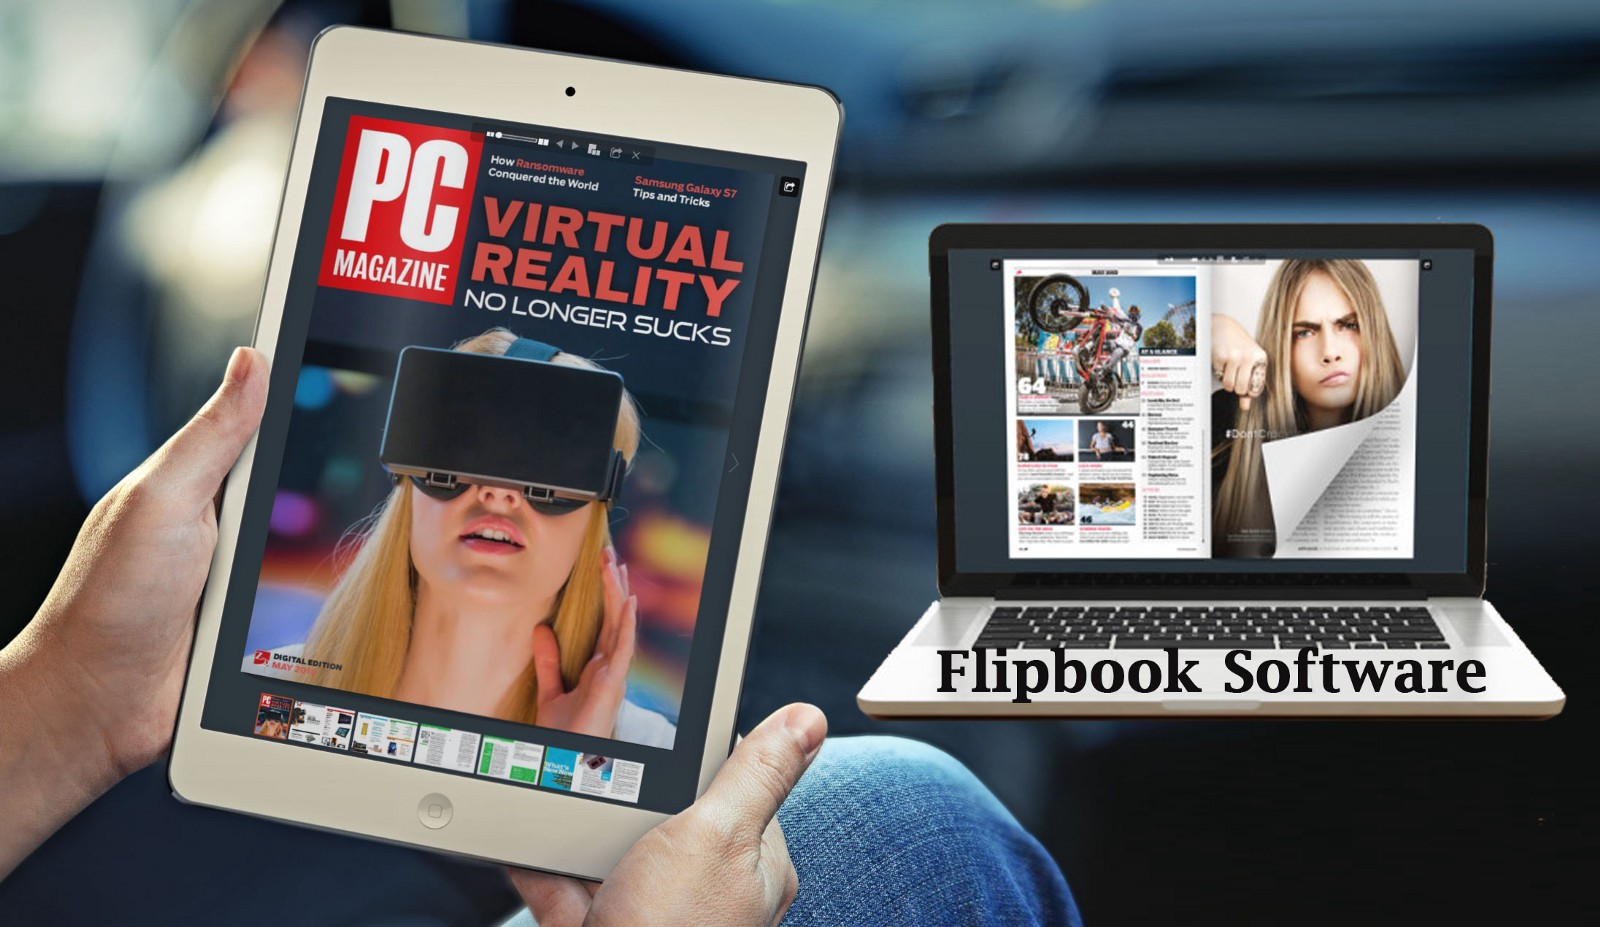 Flipbook Software| Flip Book Software | Flippingbook Software | Flipbook from PDF